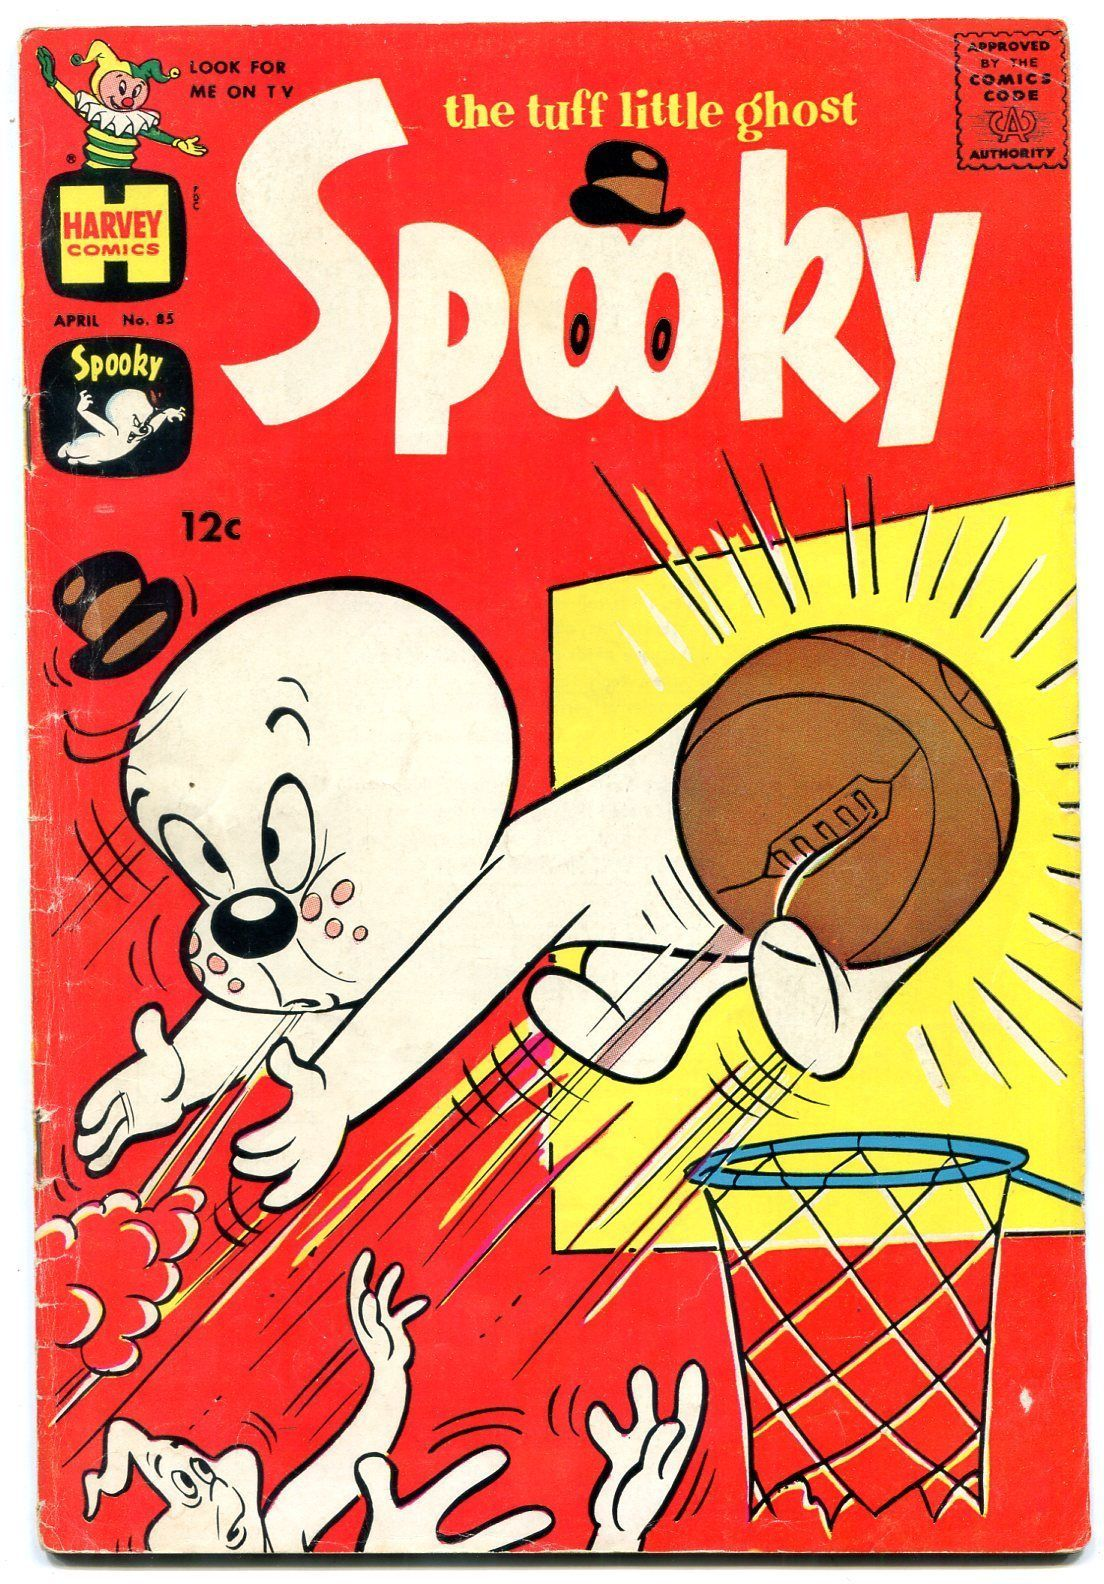 SPOOKY #85 1965-HARVEY COMICS-CASPER FRIENDLY GHOST VG